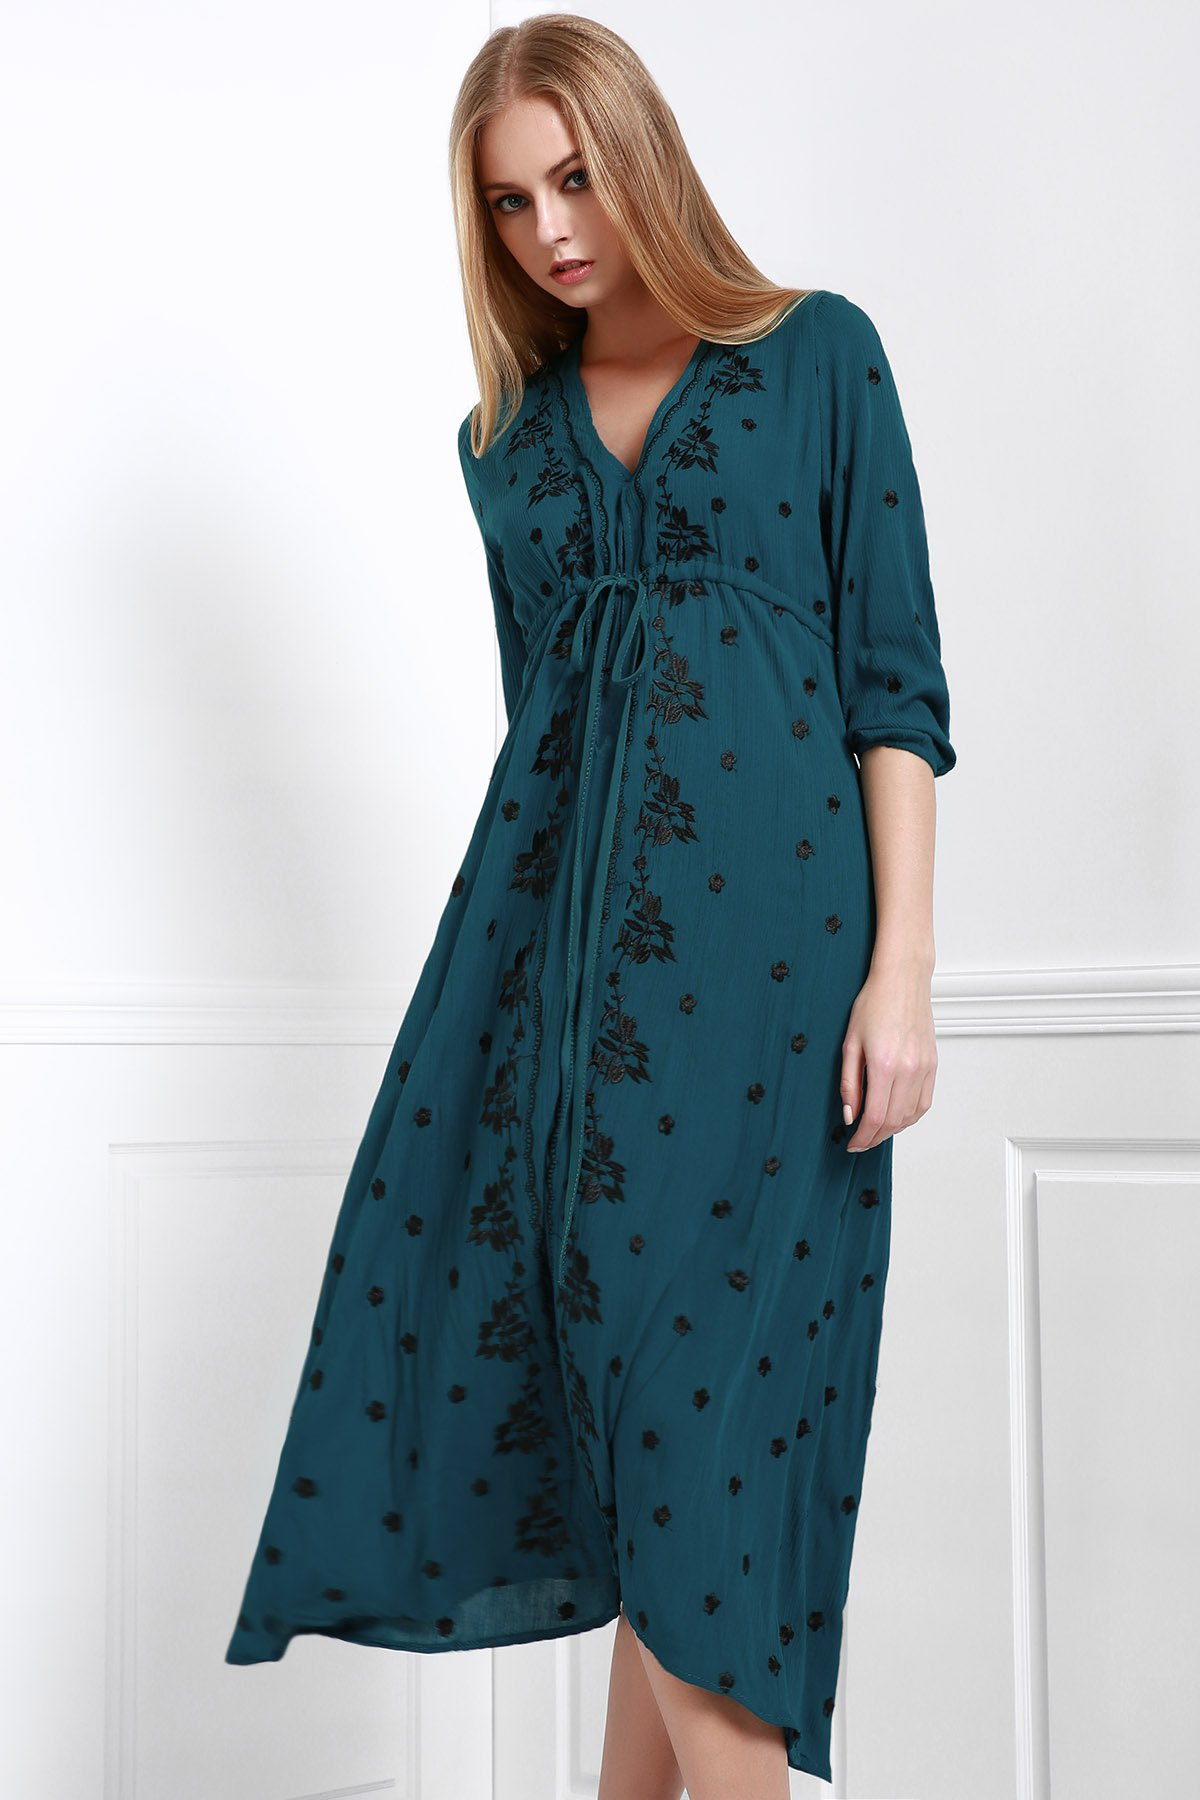 Embroidery Print Waisted Plunging Neck Maxi Dress - GREEN S